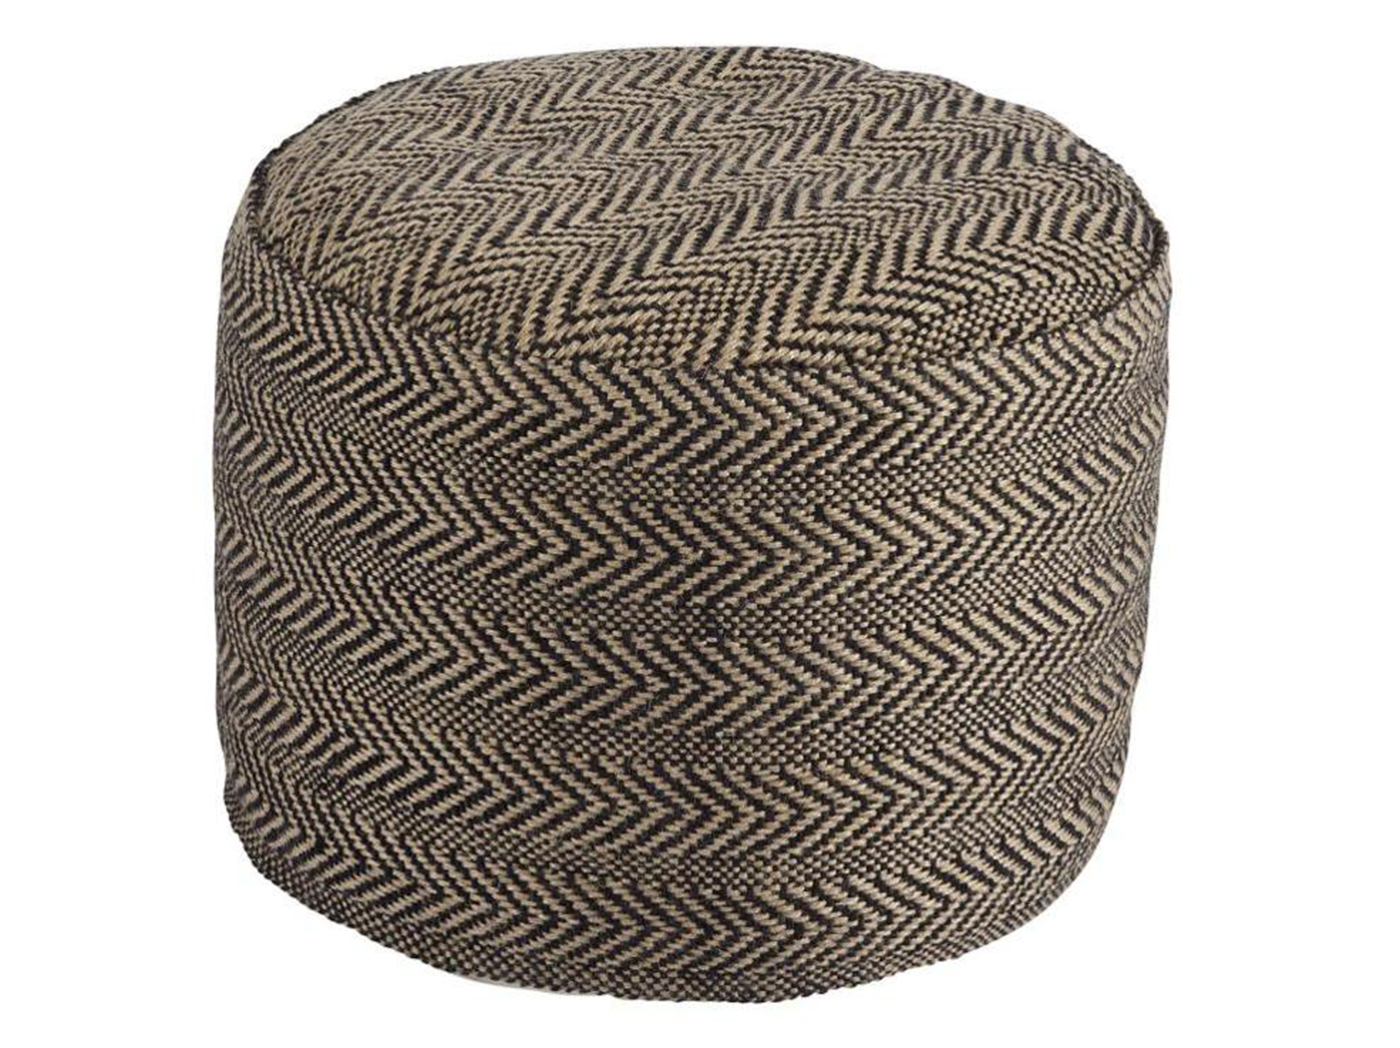 "Tan and Black Chevron Pouf 20X16.75""H"